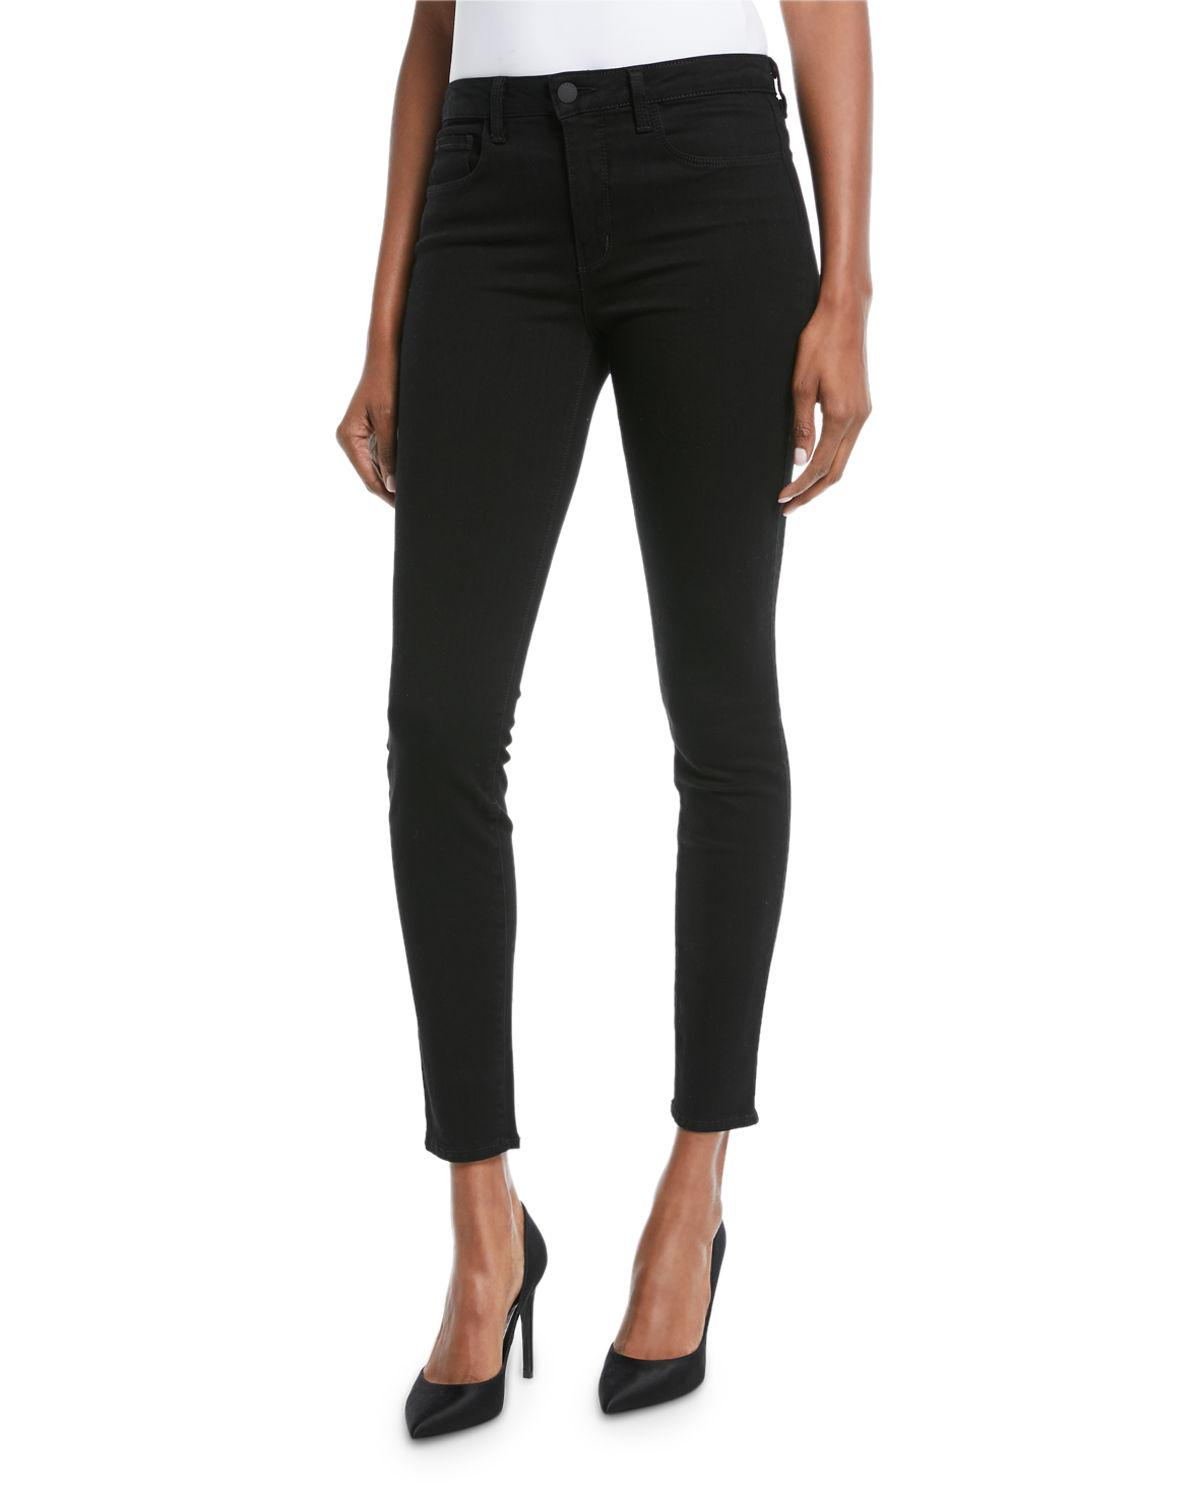 The Marguerite High-rise Skinny Jeans - Navy L'agence Really Cheap Price gGZKmr